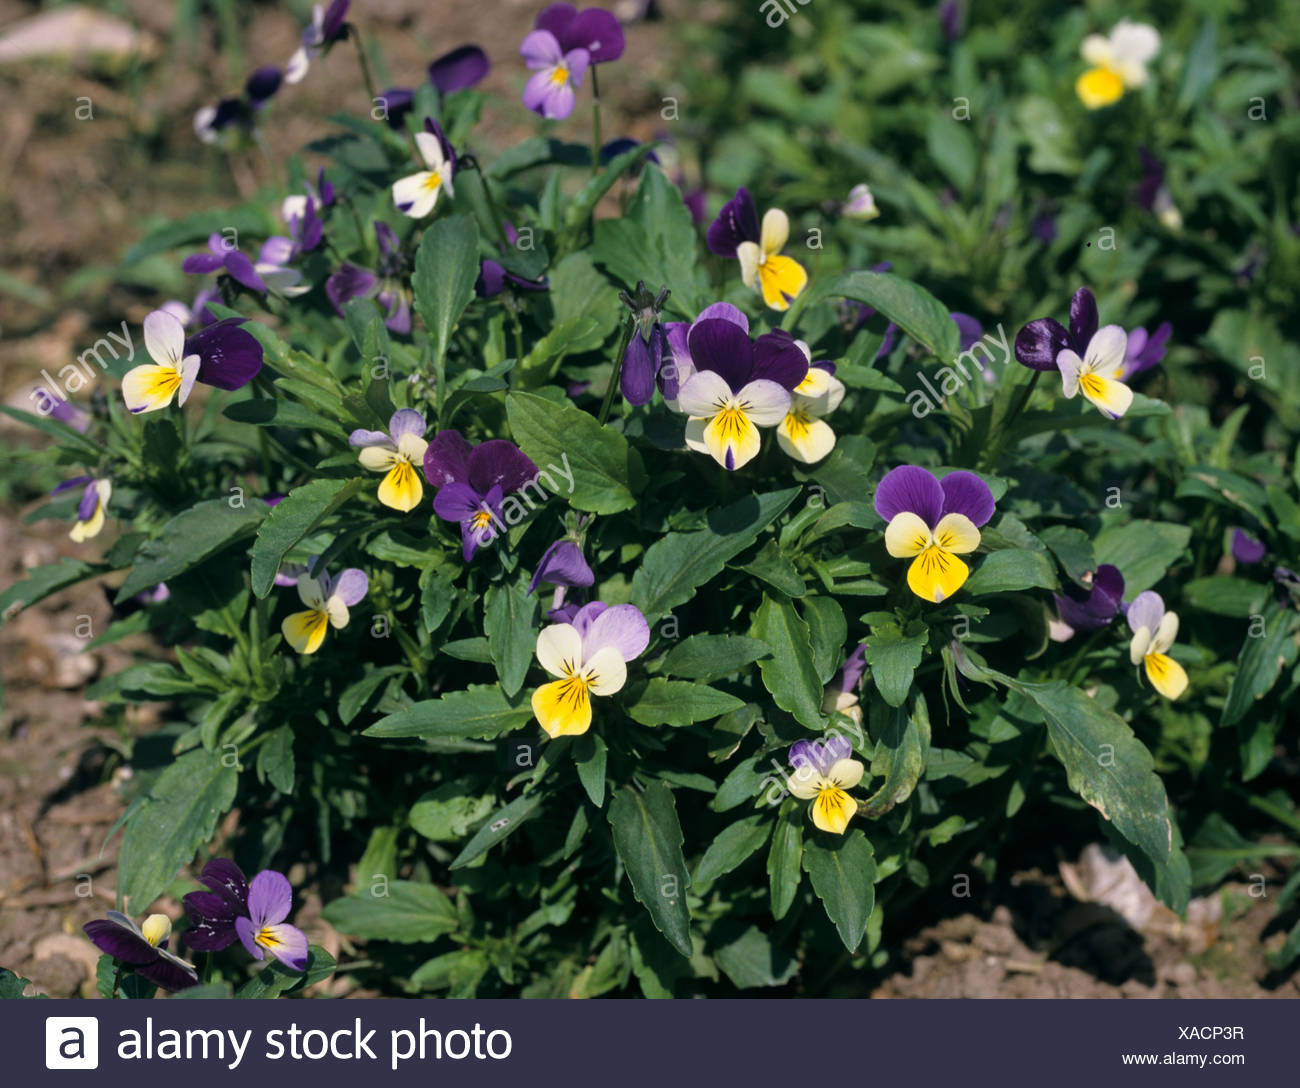 Heartsease johnny jumpup or wild pansy (Viola tricolor) flowering plants - Stock Image